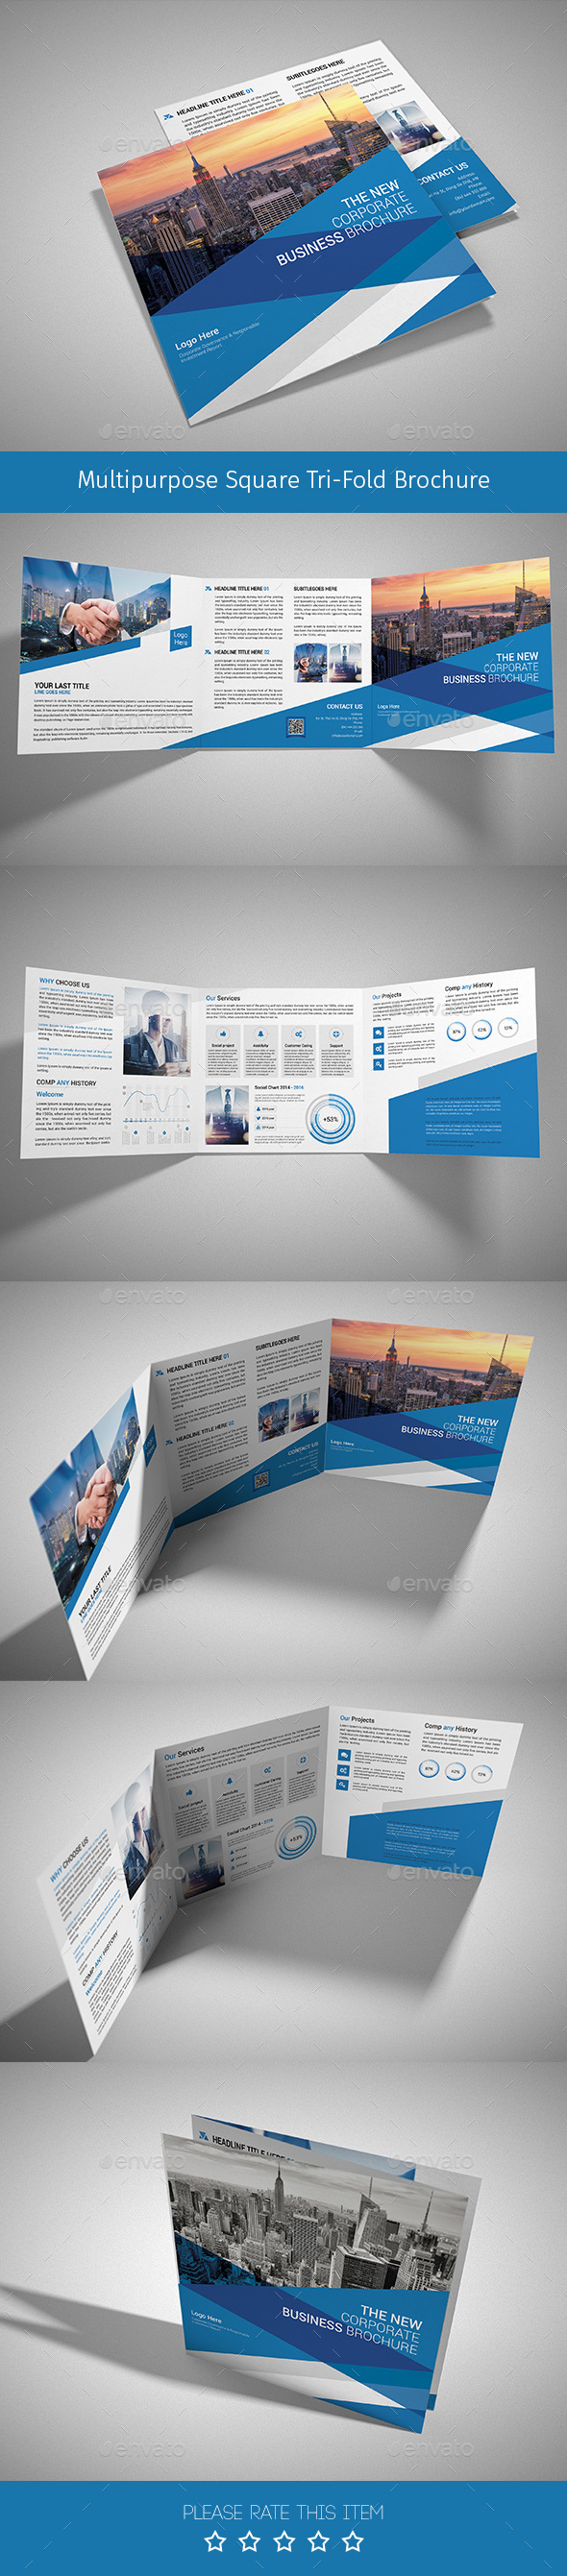 Corporate Tri-fold Square Brochure 05 - Corporate Brochures